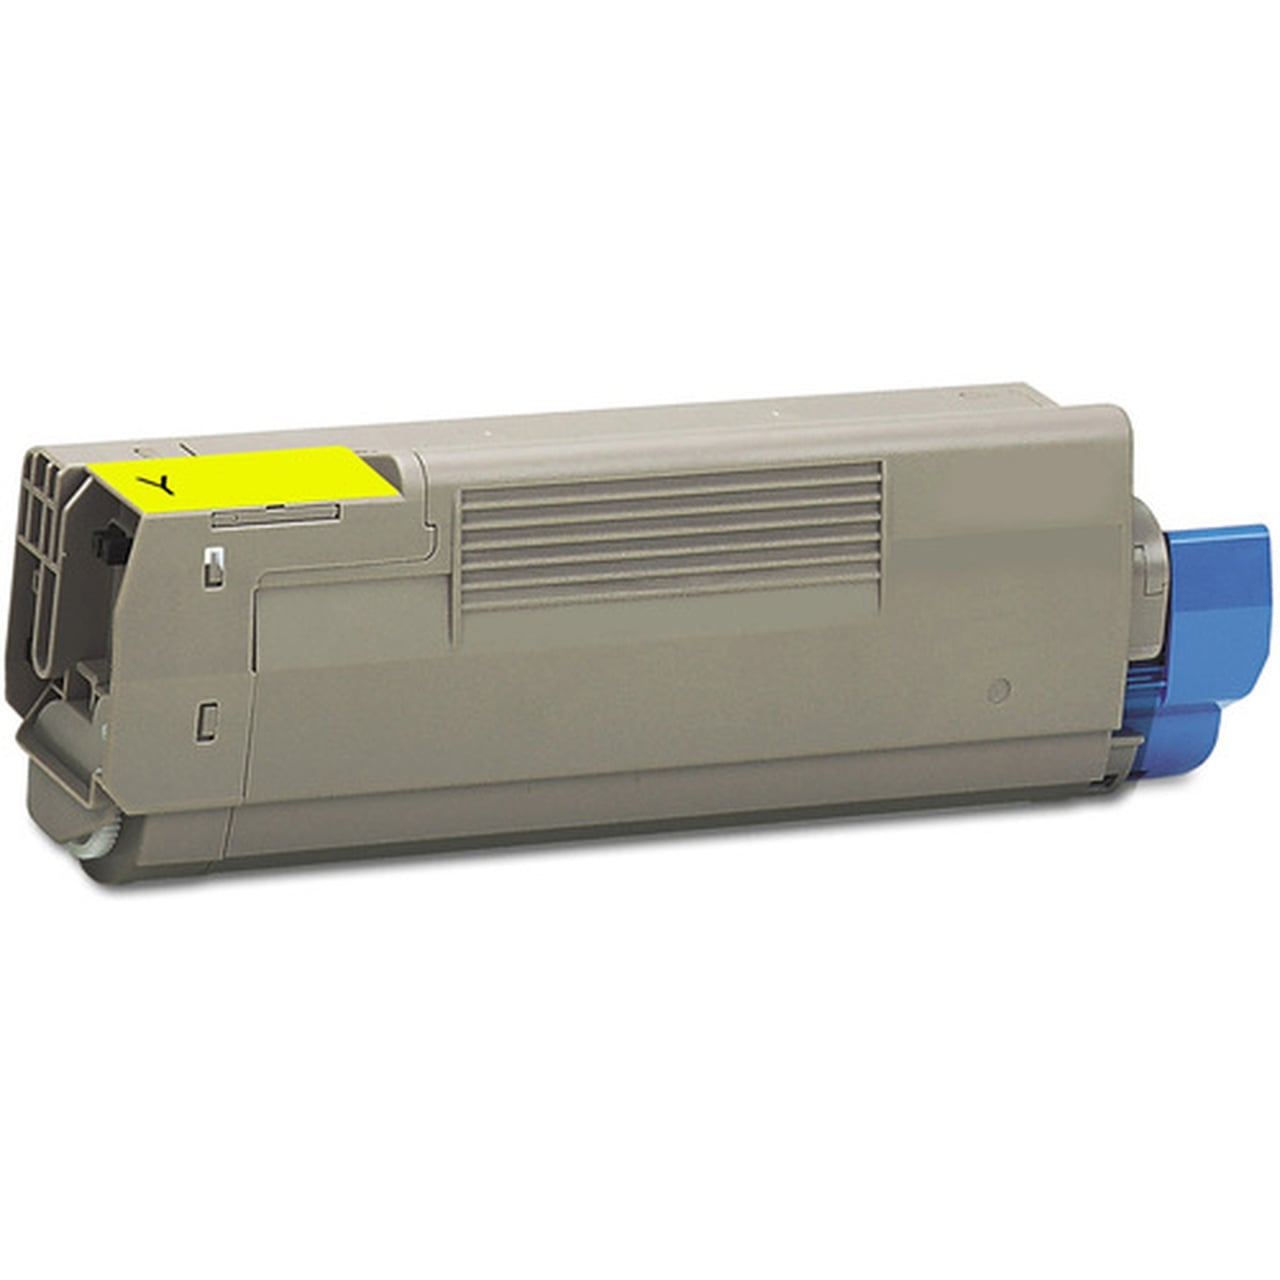 43034801 Toner Cartridge - Okidata Remanufactured (Yellow)